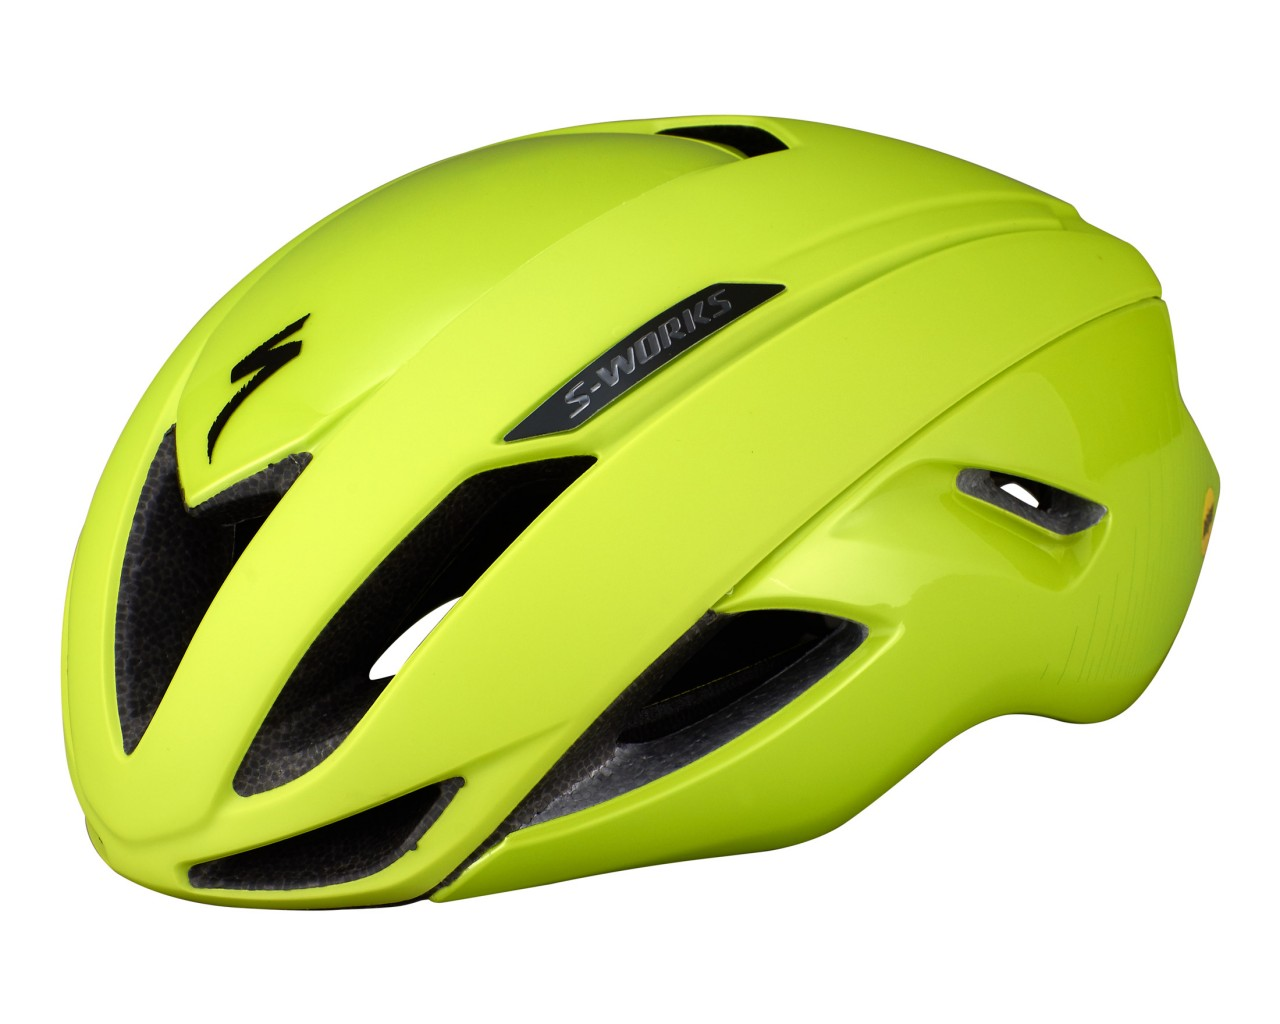 Specialized S-Works Evade Road Bike Helmet ANGi ready & MIPS | hyper green